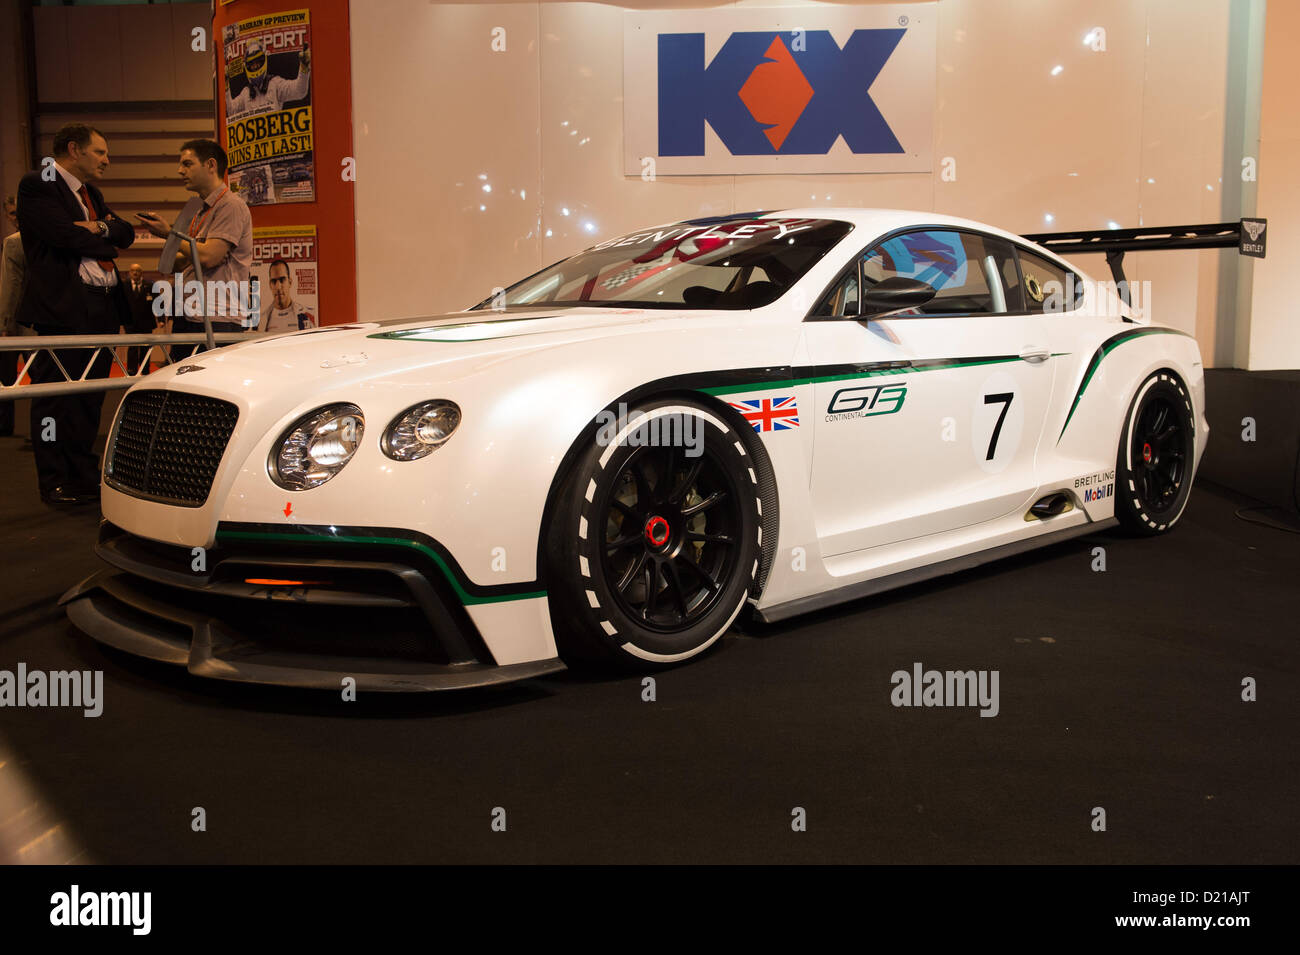 The new Bentley Continental GT3 car with Brian Gush  of Bentley being interviewed in the background at Autosport - Stock Image